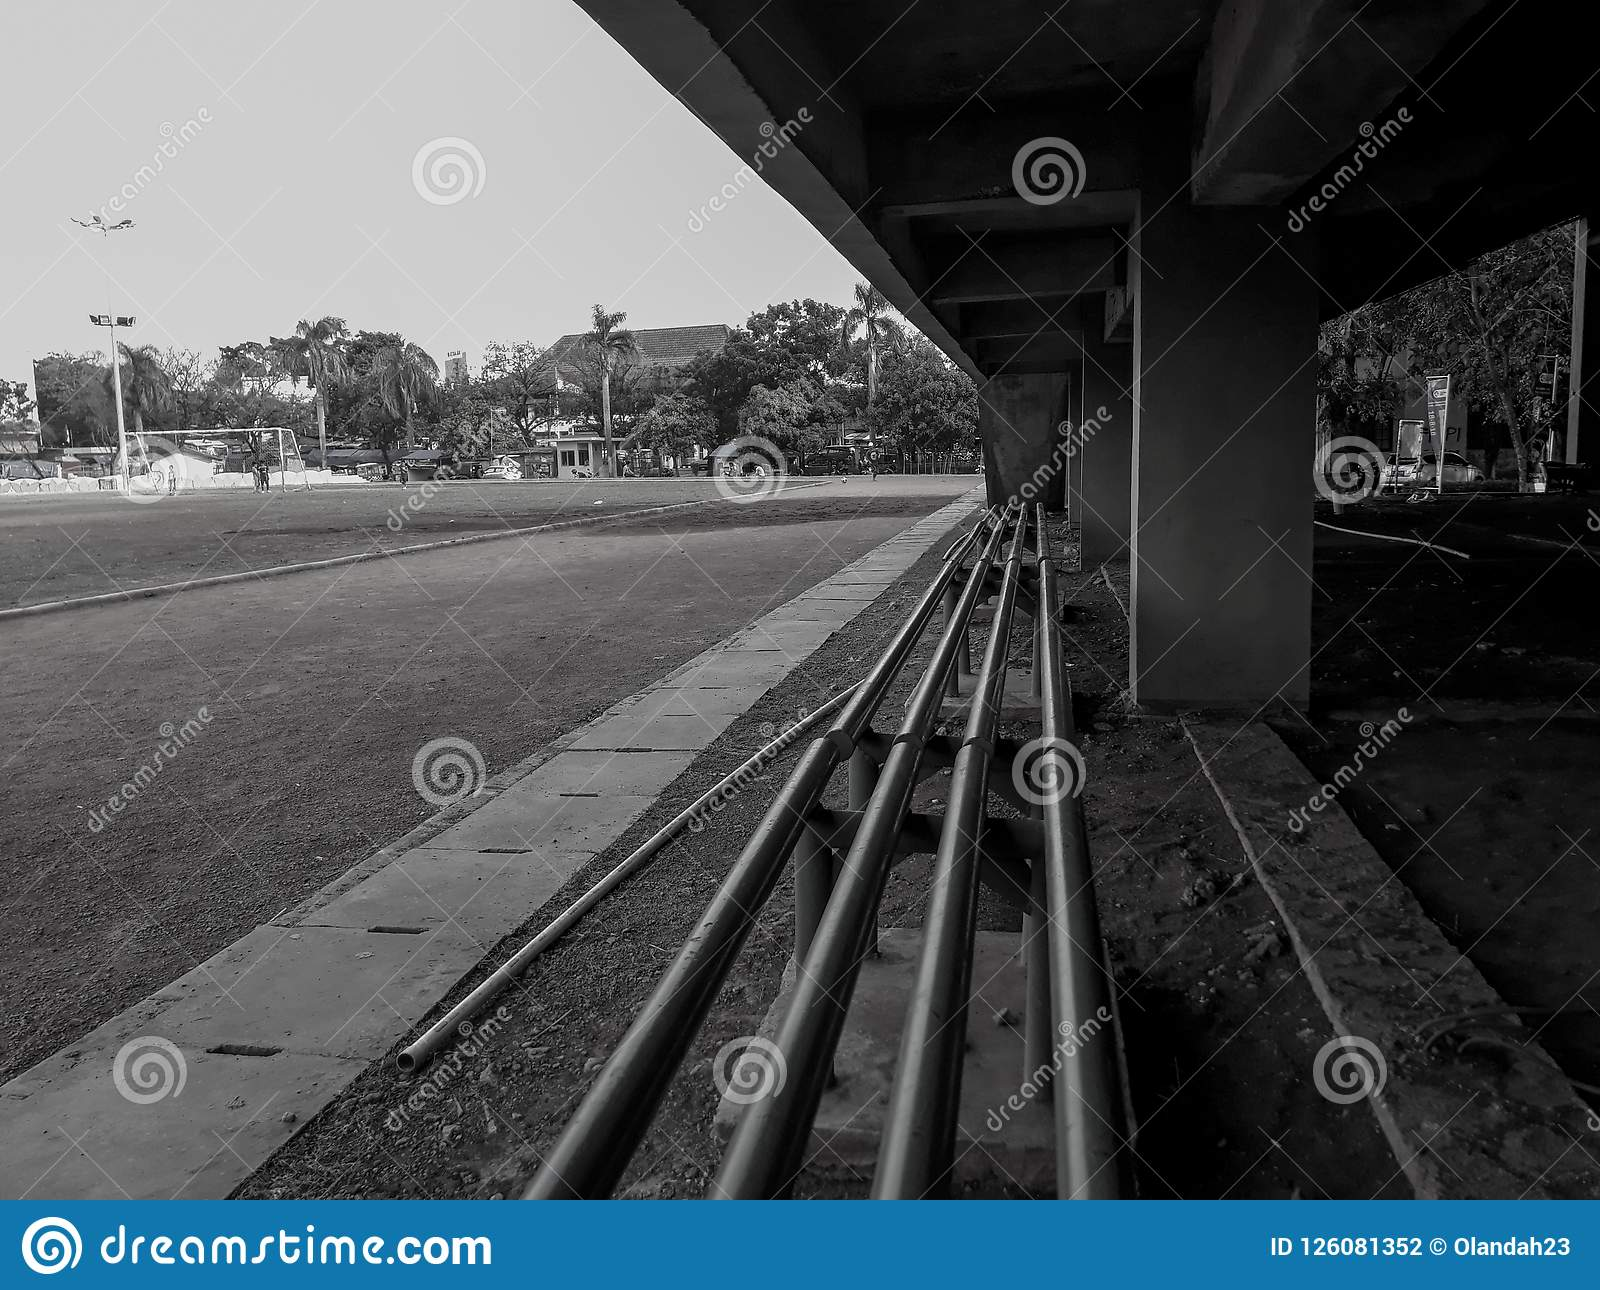 A seat on the edge of the football field. Black and white